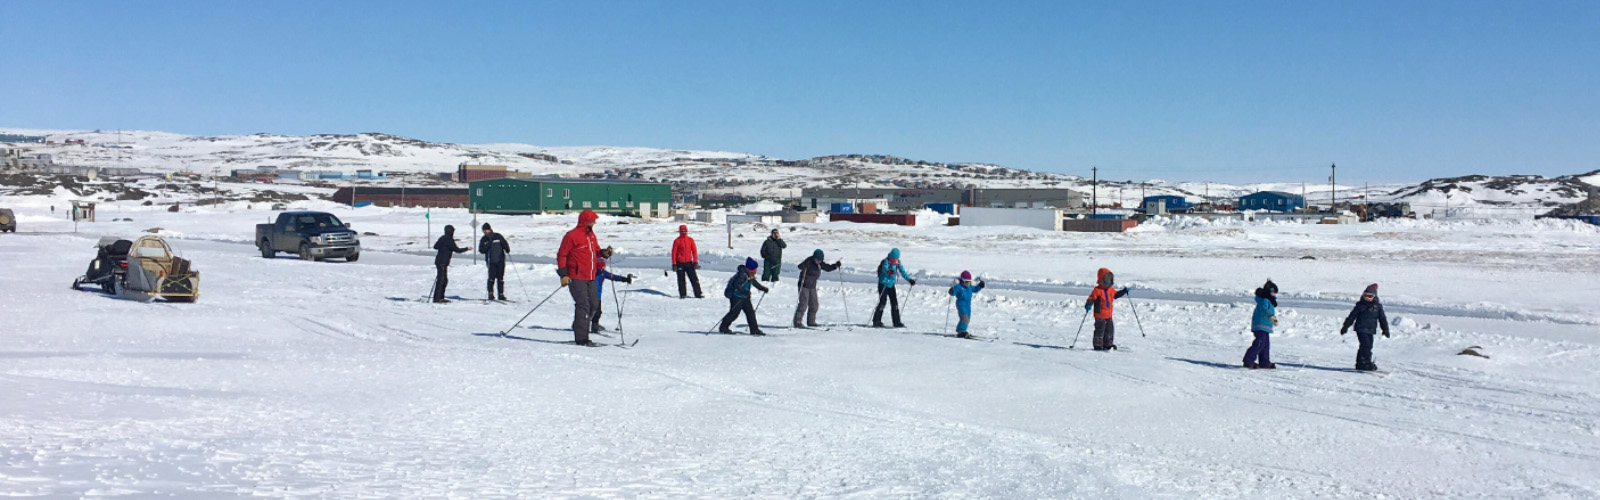 Iqaluit Jackrabbit cross-country ski